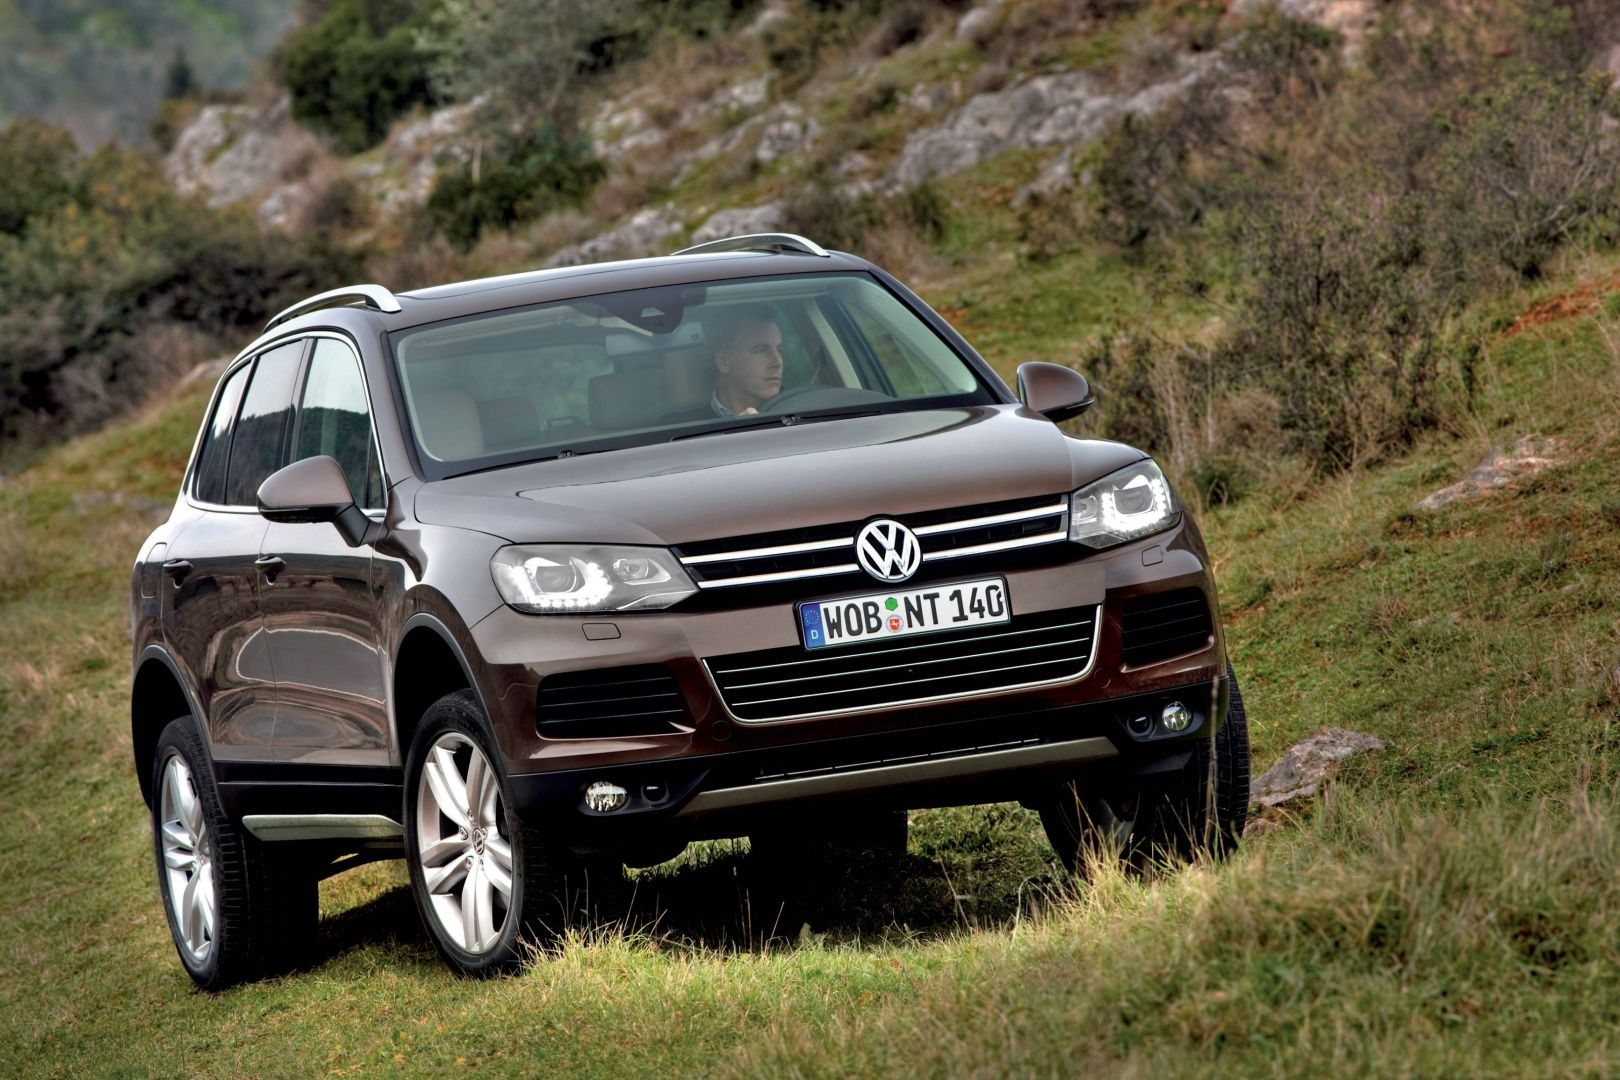 volkswagen touareg specs 2010 2011 2012 2013 2014 autoevolution. Black Bedroom Furniture Sets. Home Design Ideas